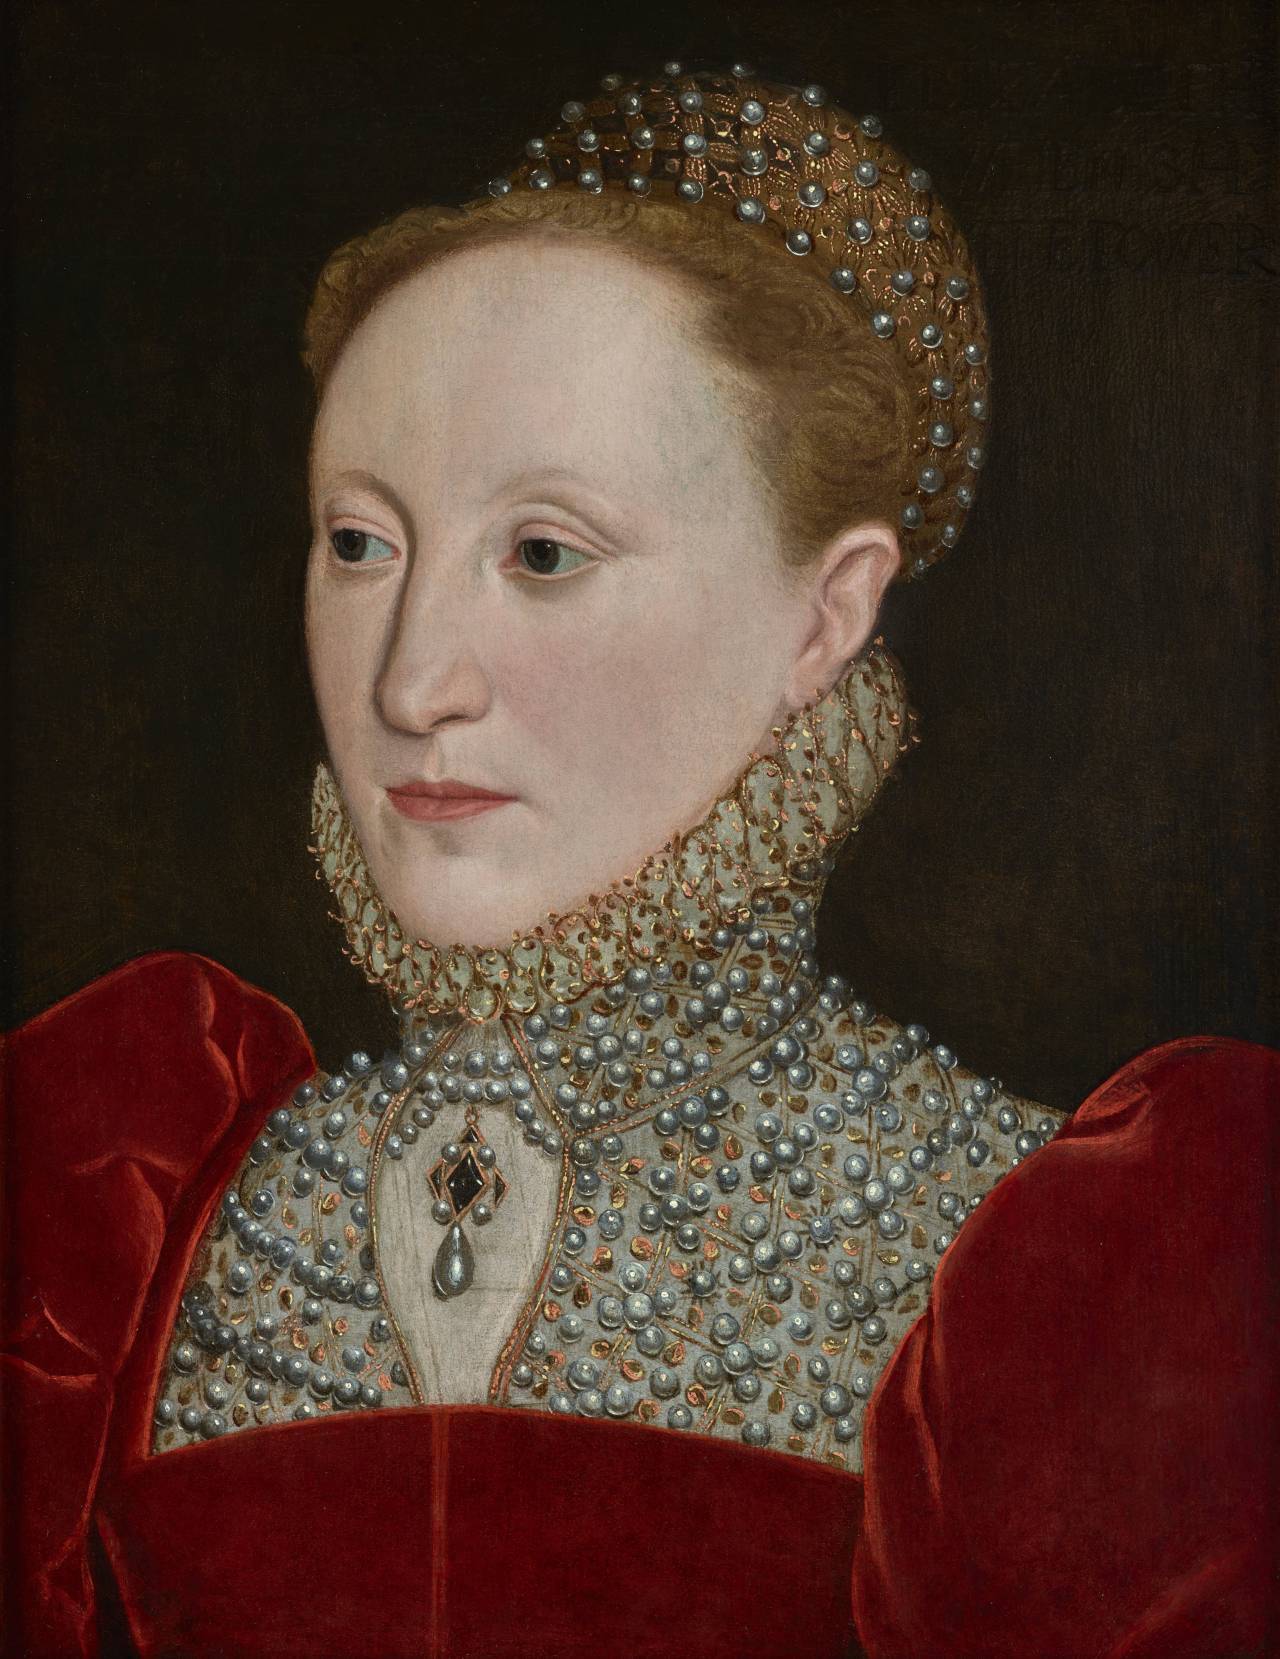 The Human Face of Elizabeth I of England, portrait from the 1560s